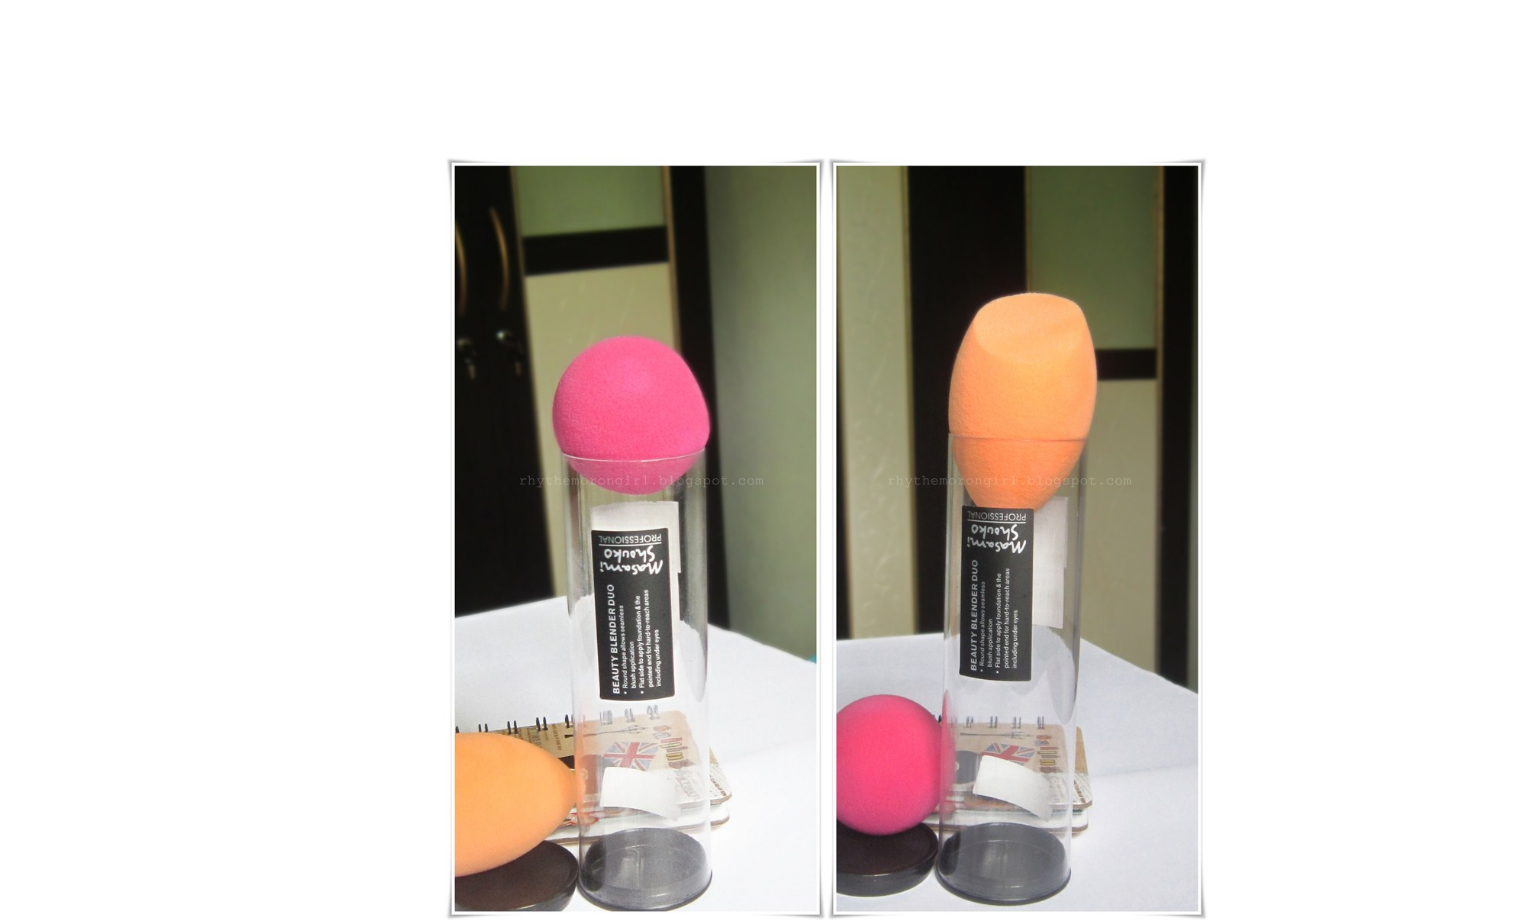 Masami Shouko Professional Complexion Beauty Blender Duo Orange Pink